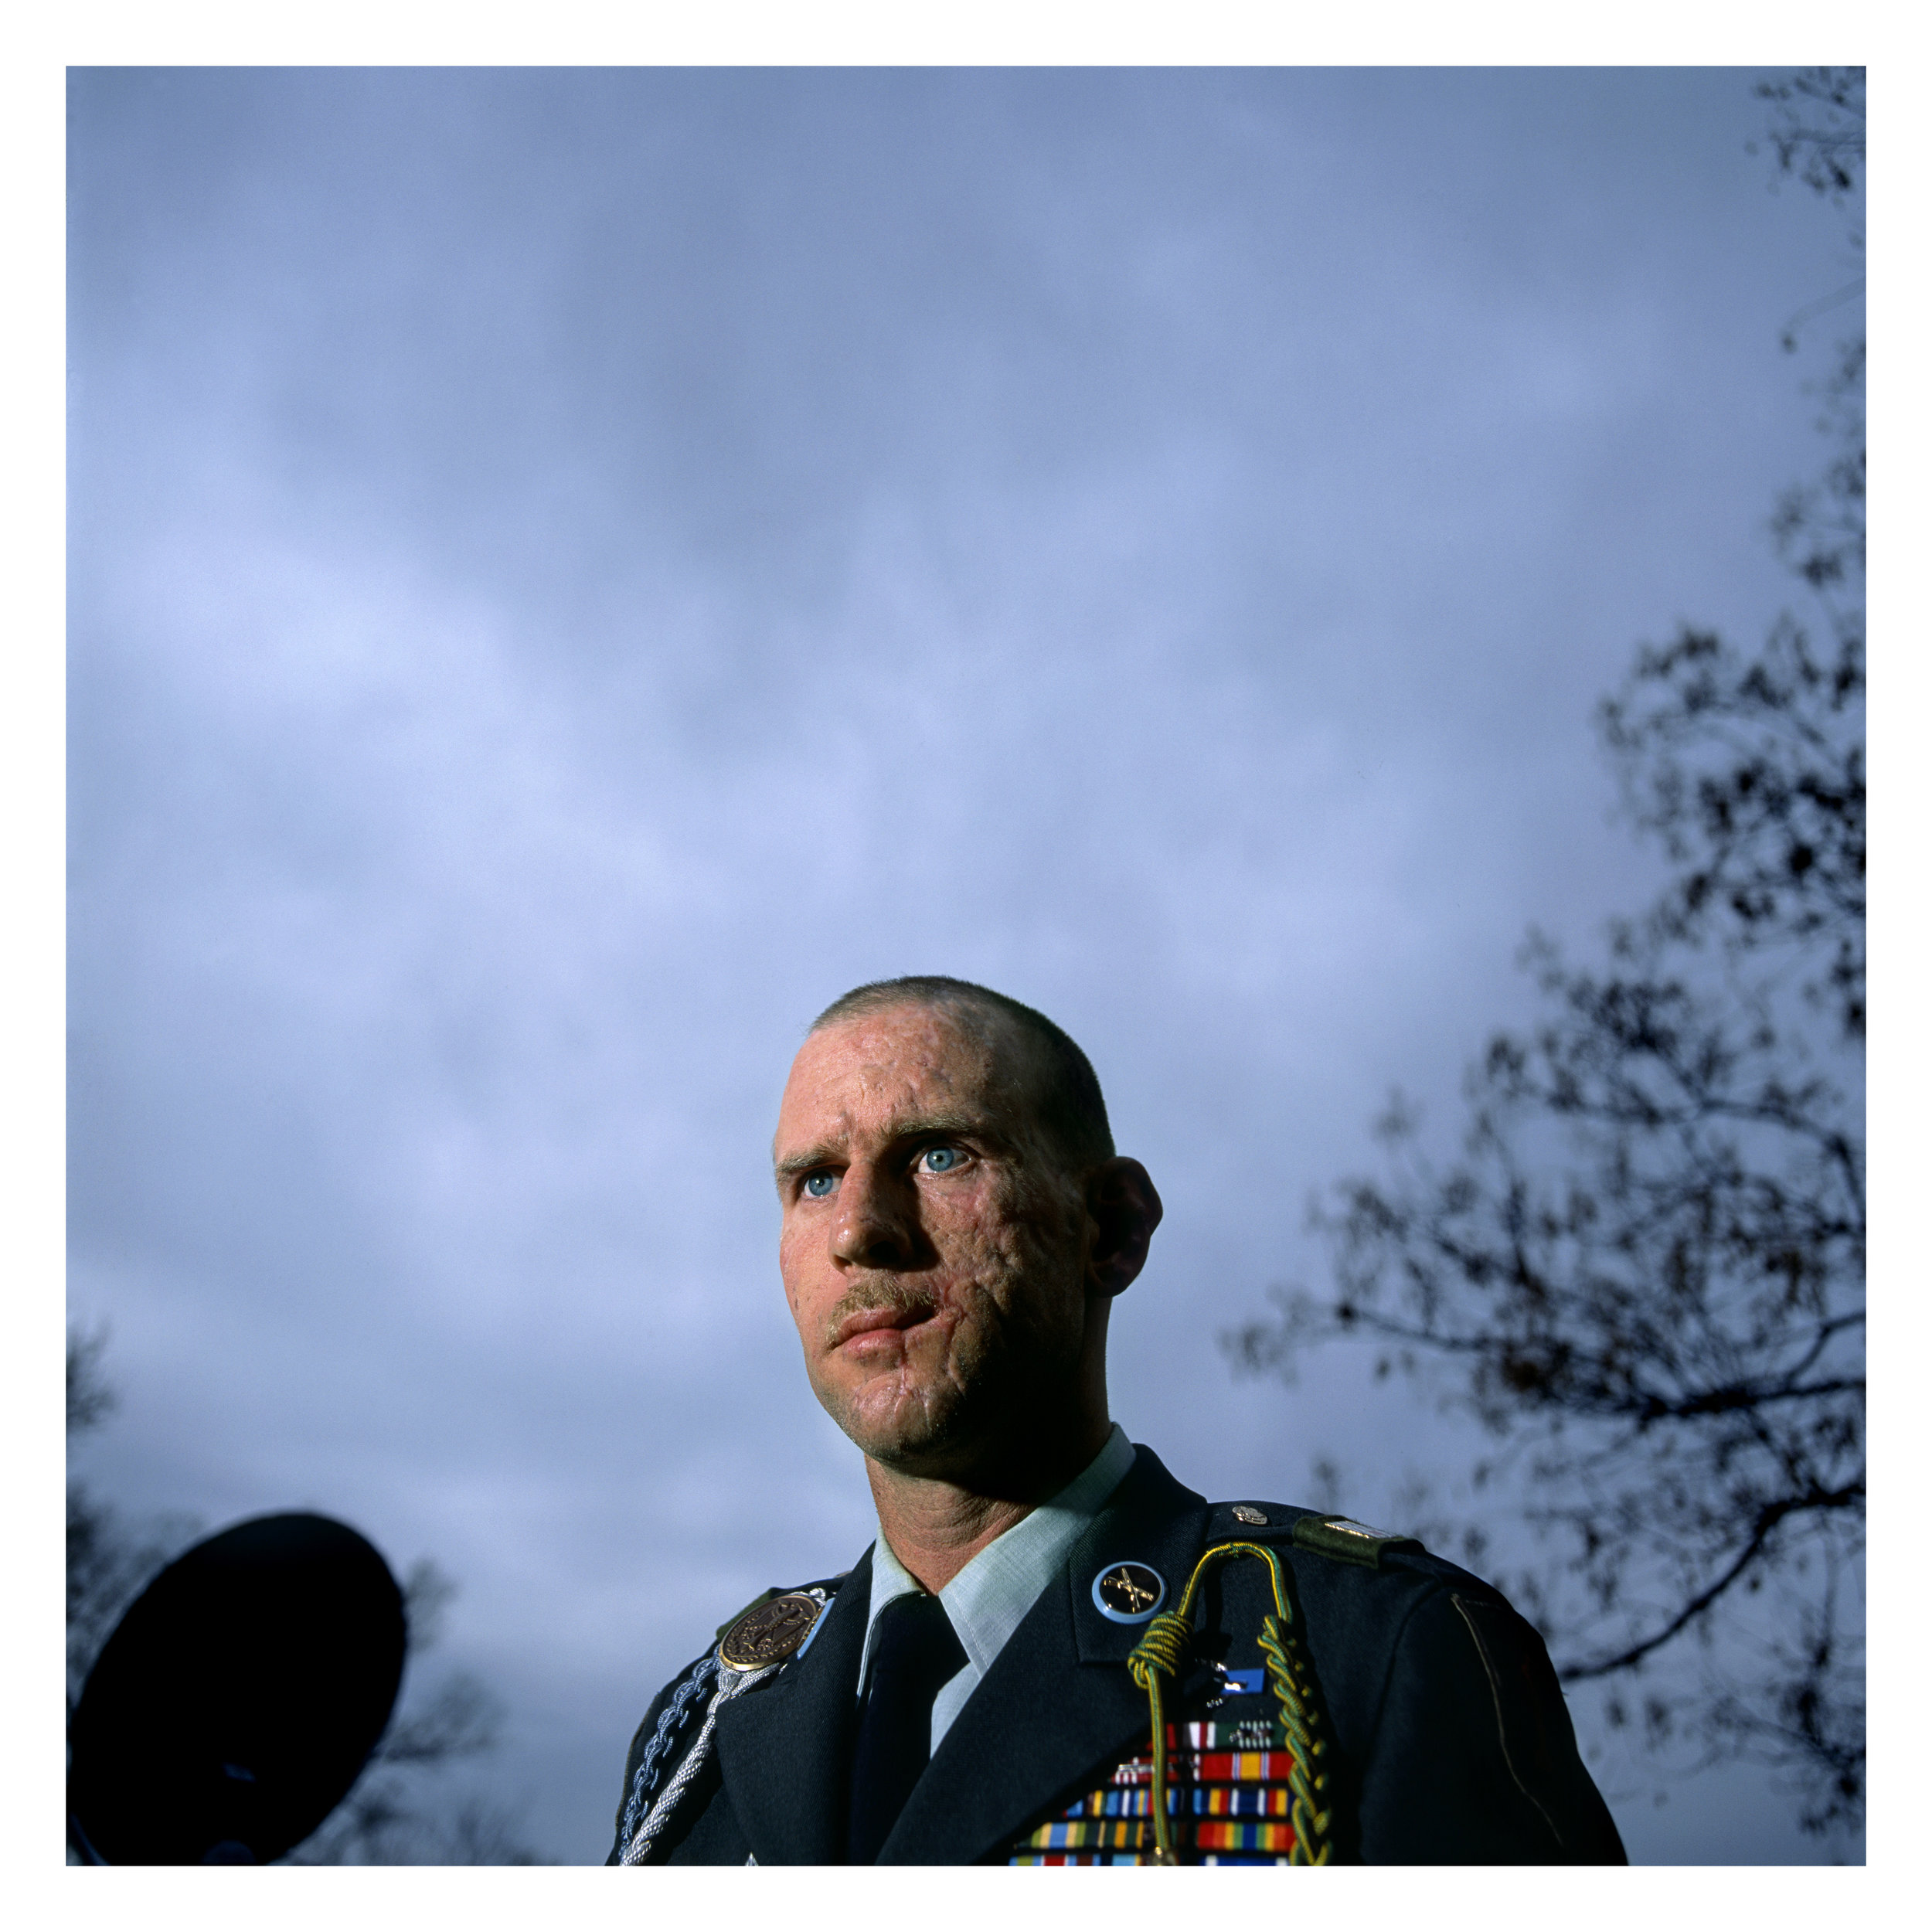 Sgt. 1st Class, Joseph Mosner, 35, 1st Brigade, 1st Infantry Division, was injured December 16, 2003 in Baghdad when a roadside bomb exploded. The blast ripped apart the left side of his face, his left ear and and took off his scalp down to the skull. He broke both of his legs, punctured a hole in his left bicep down to the bone, and sent shrapnel into his arms and chest. Photographed at his home on base at Ft. Riley, Kansas, April 9, 2004.